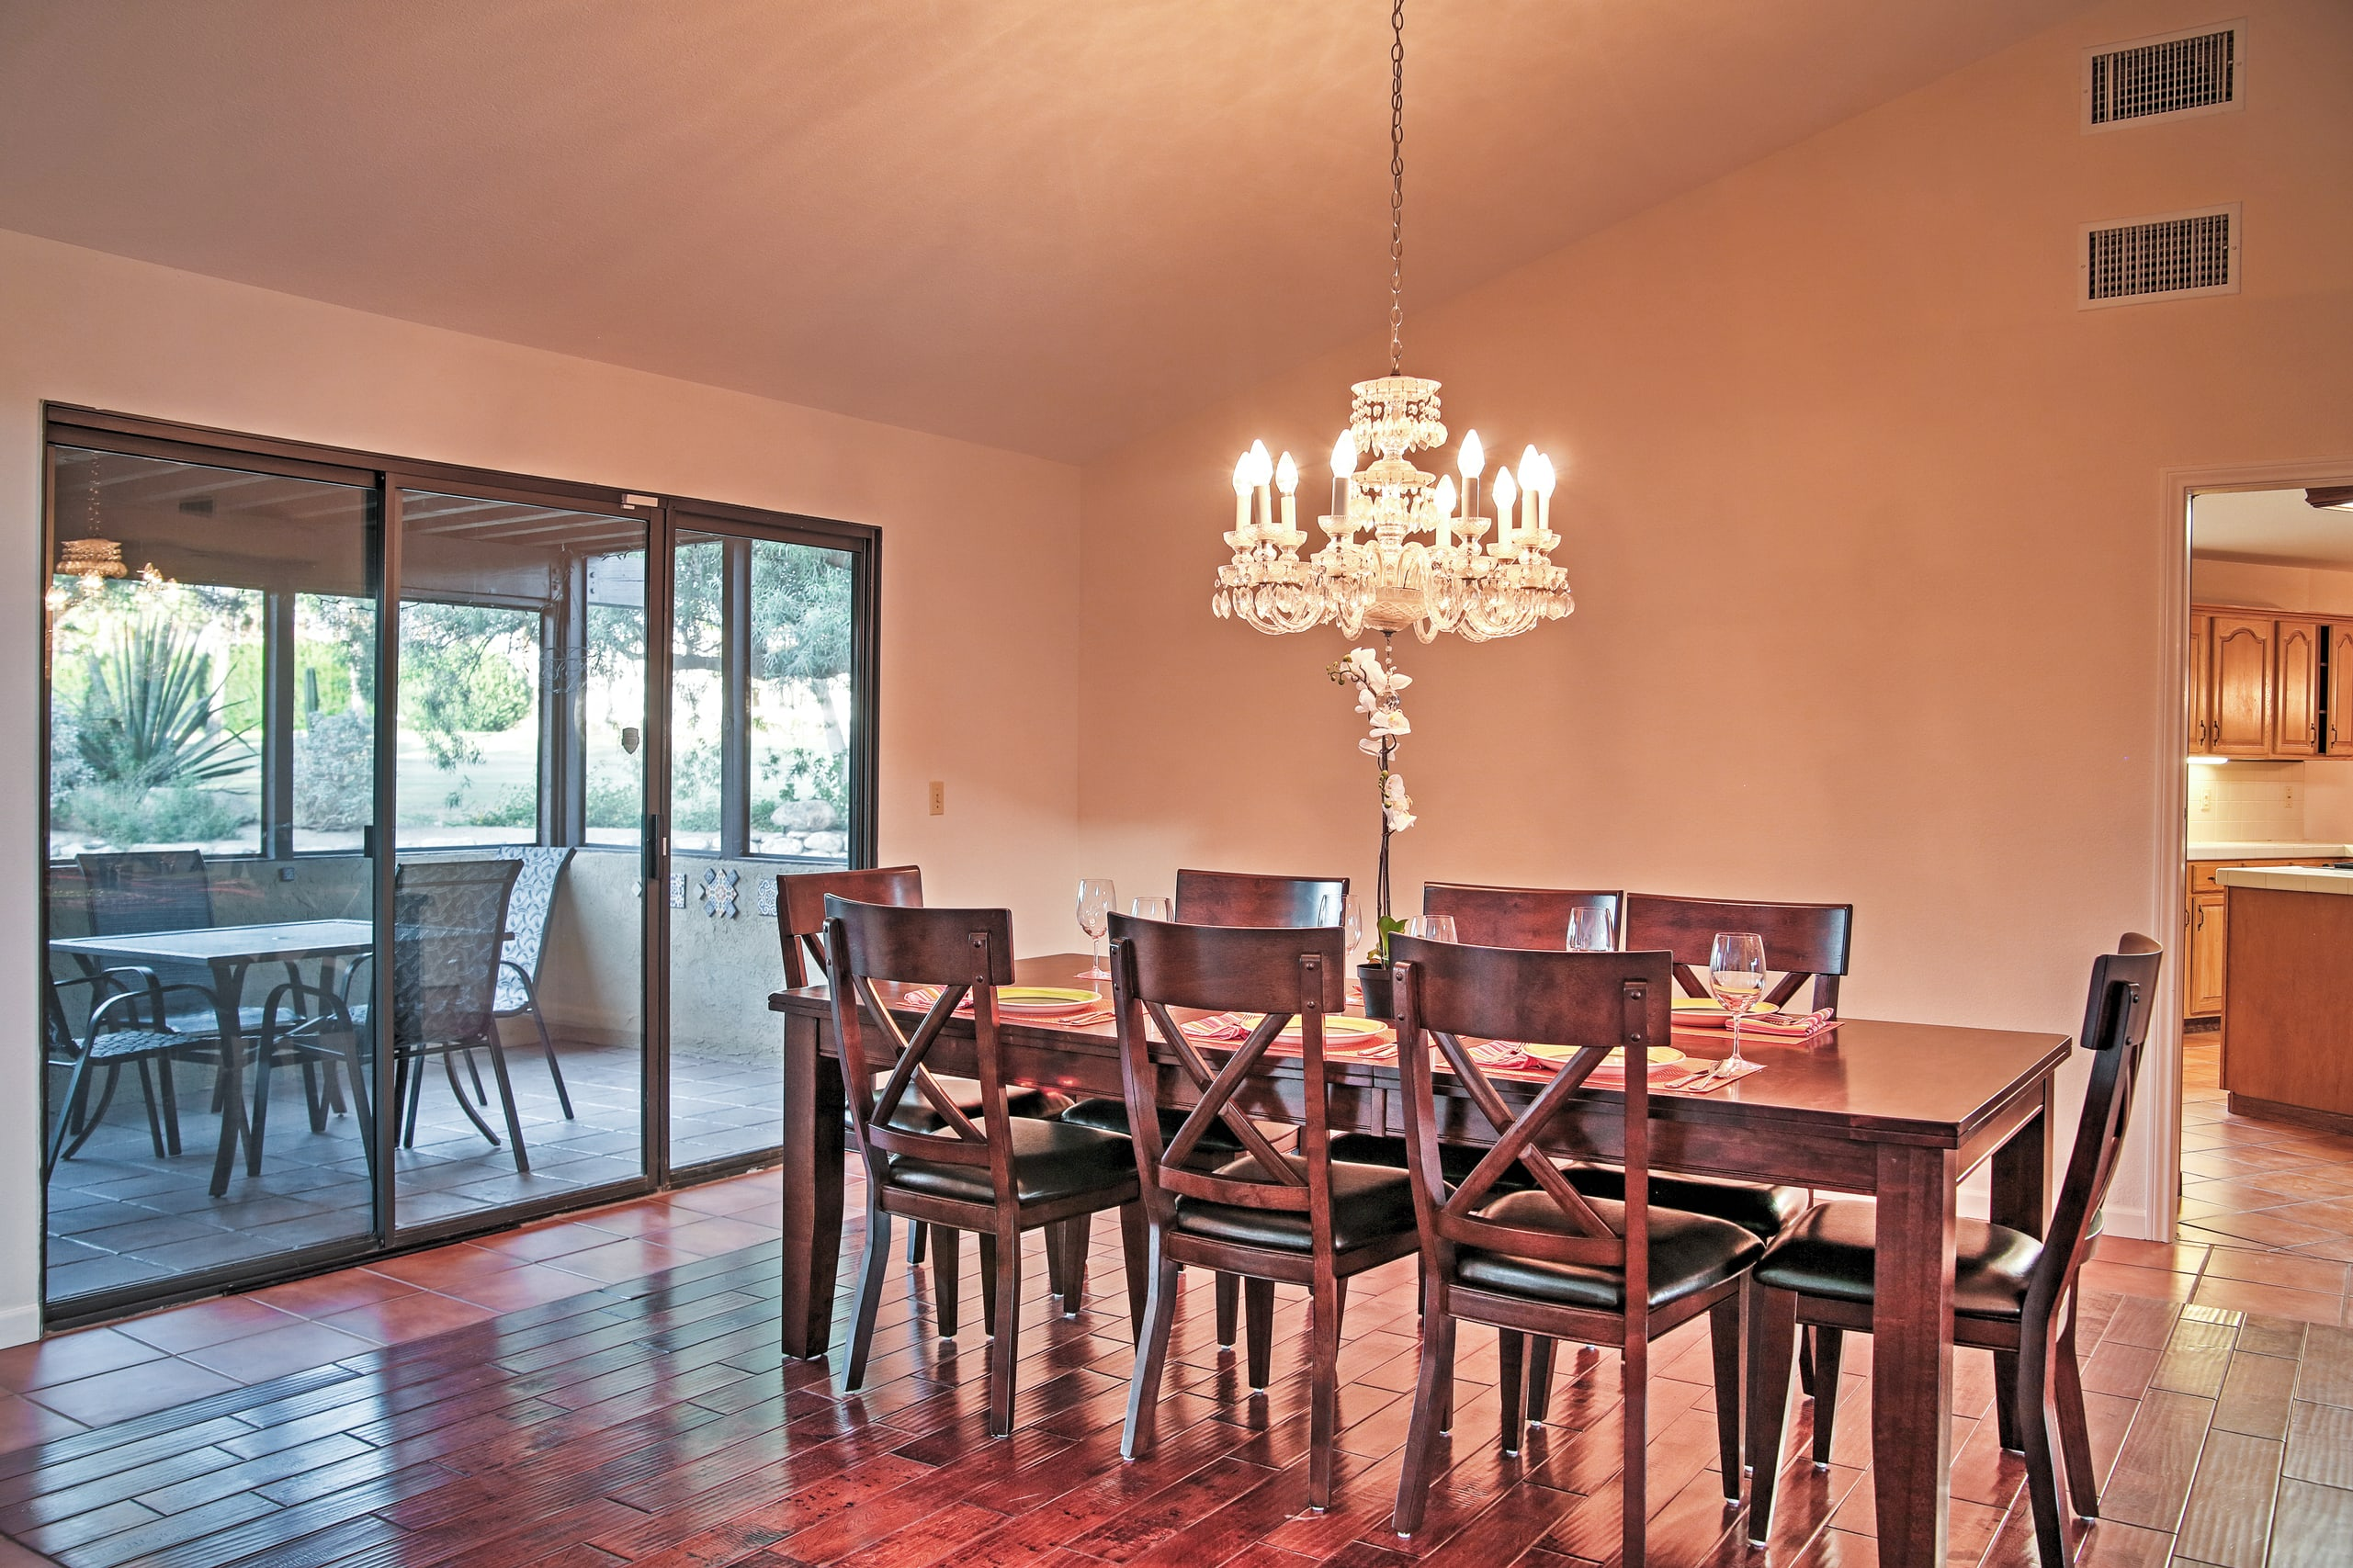 You'll love sharing food and stories in the dining area.